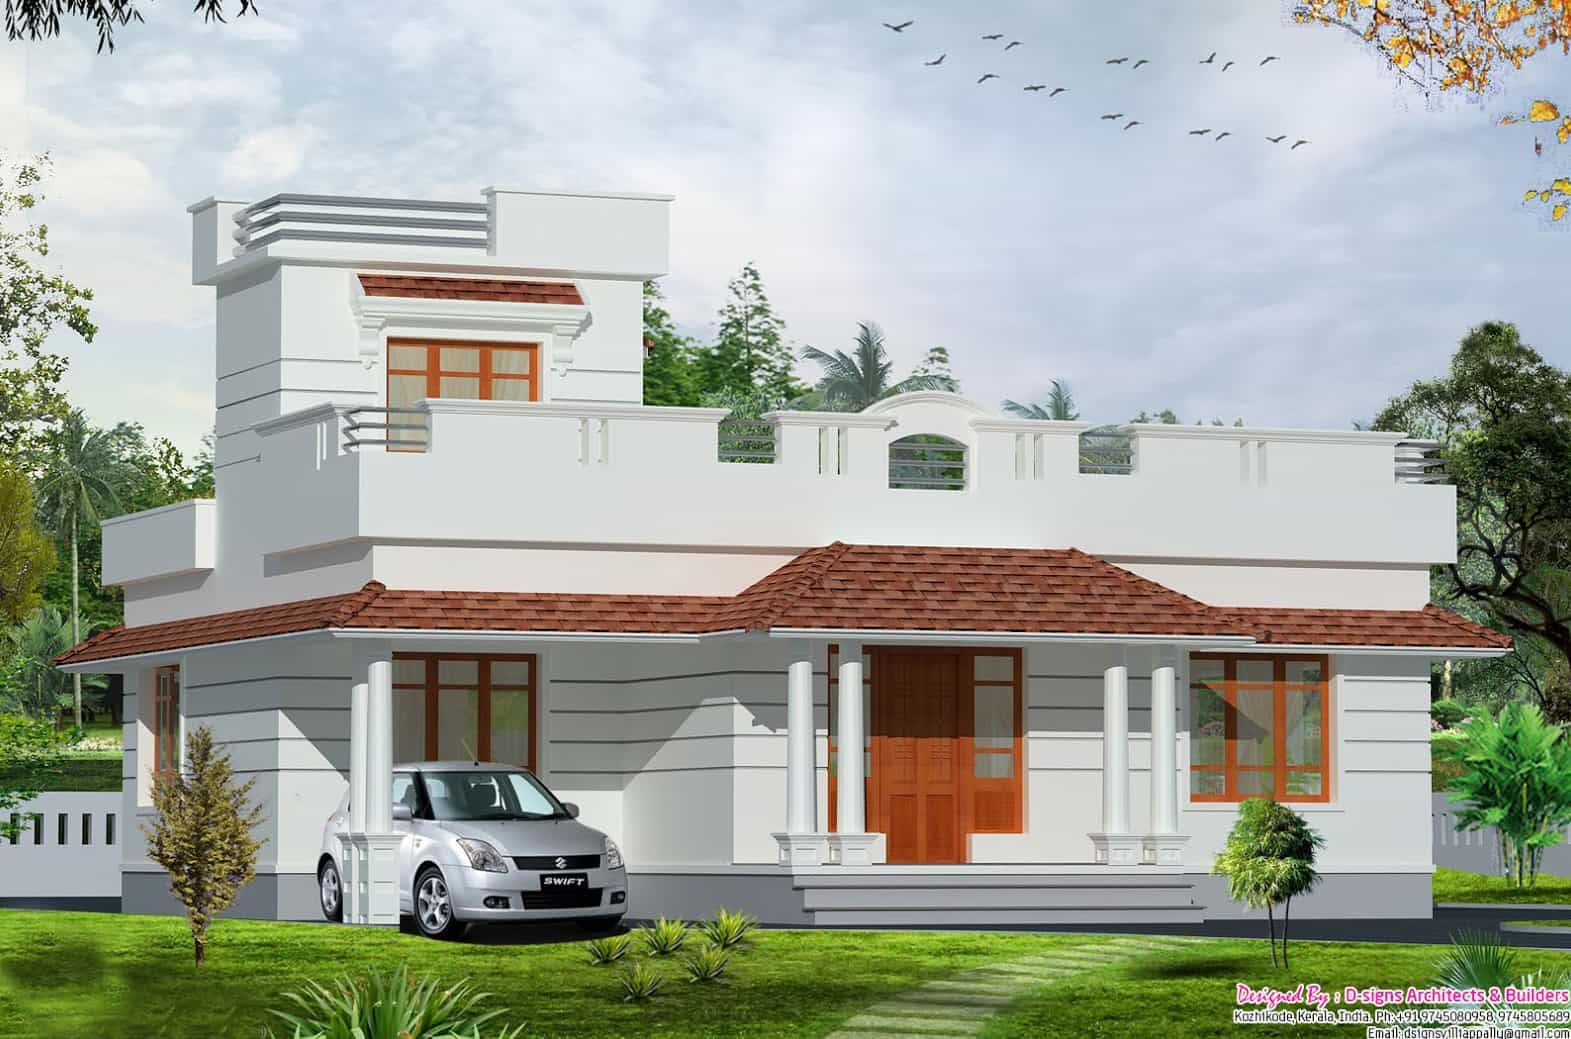 Icymi bhk house for sale in chennai also best designs india images rh pinterest